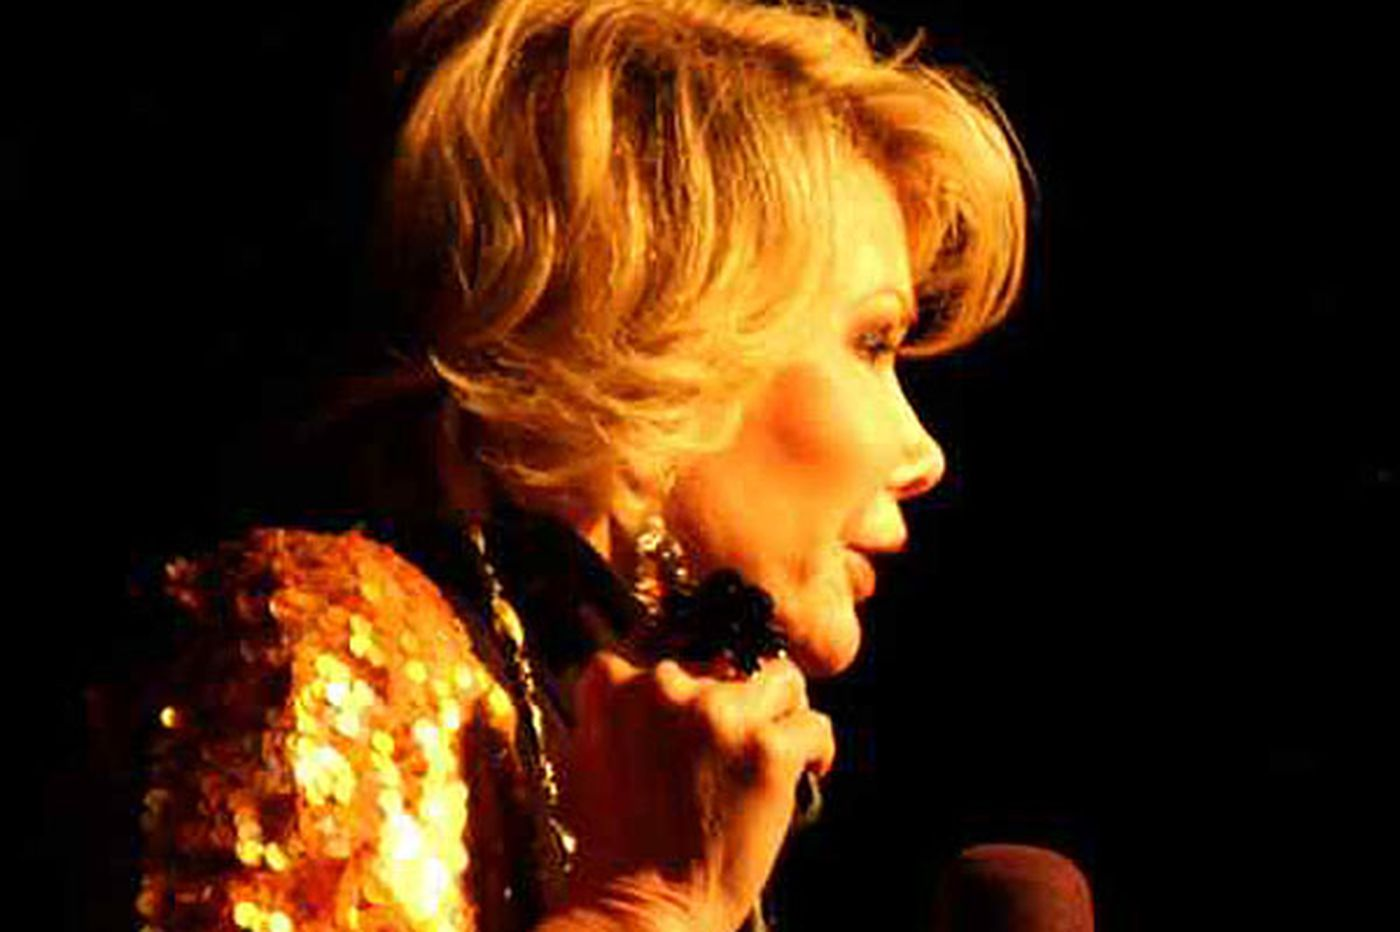 The shows, the clothes, the dish, even the critics: For Joan Rivers, it's all good